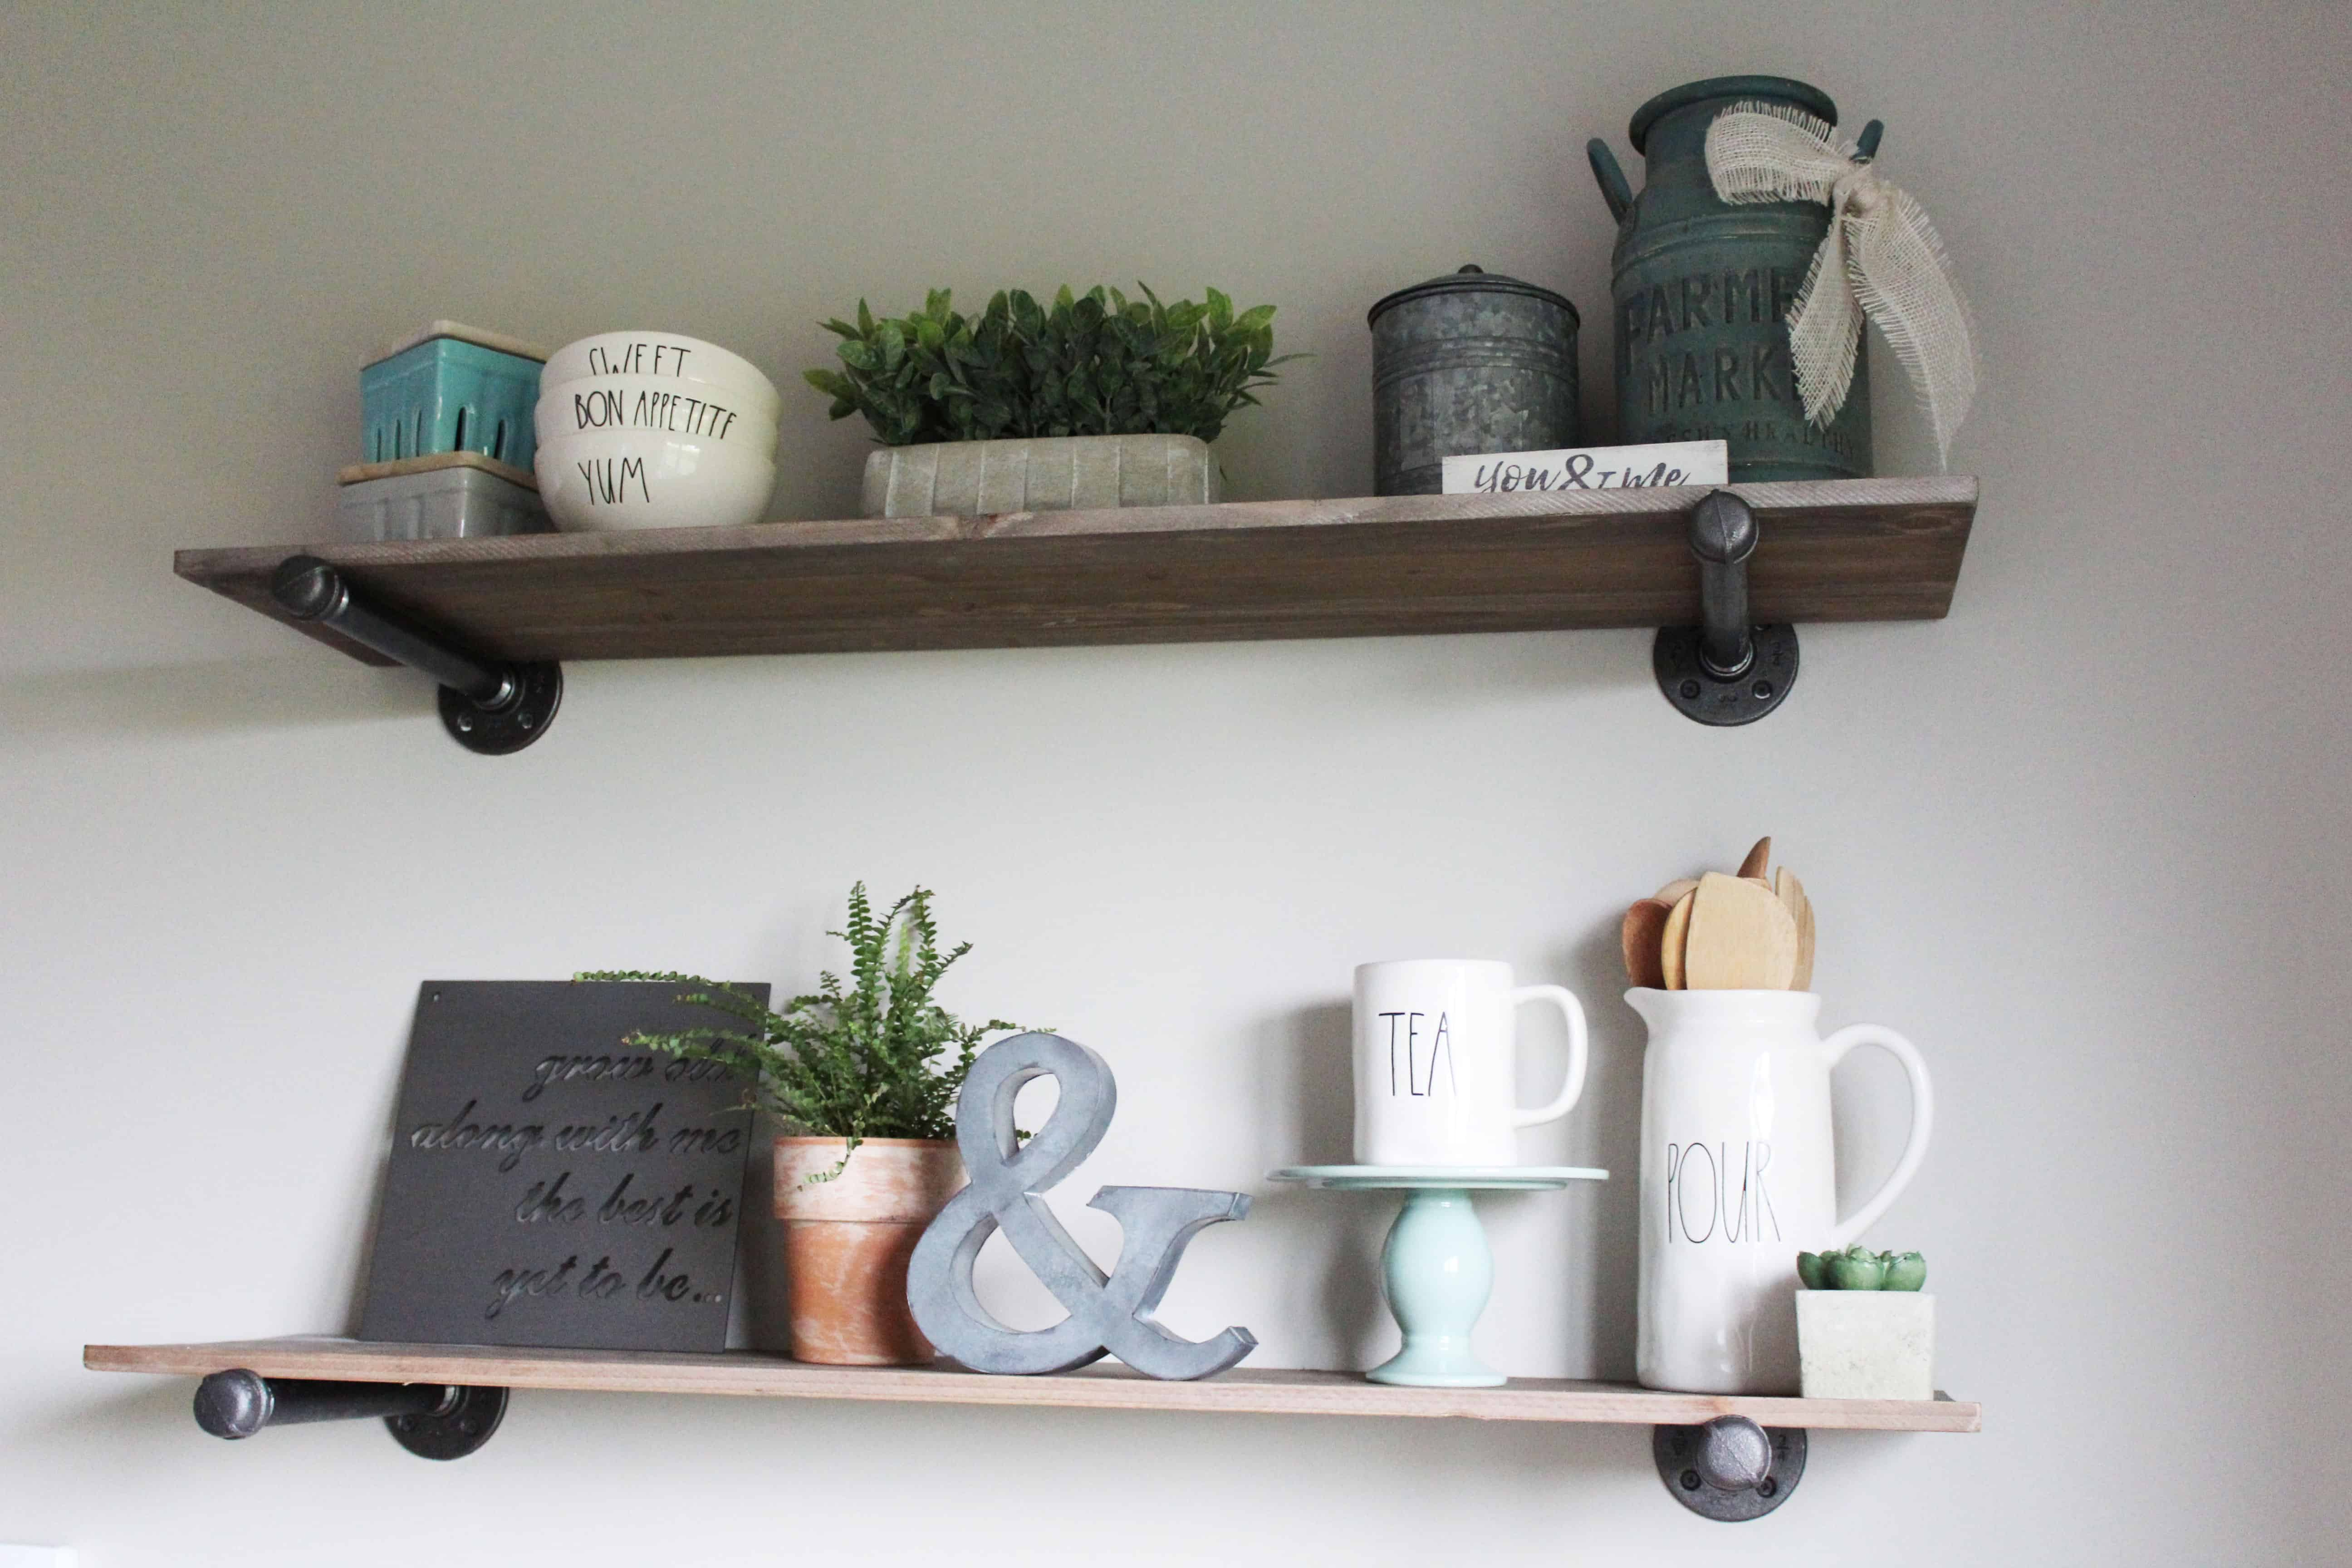 Wood and straight pipe shelves